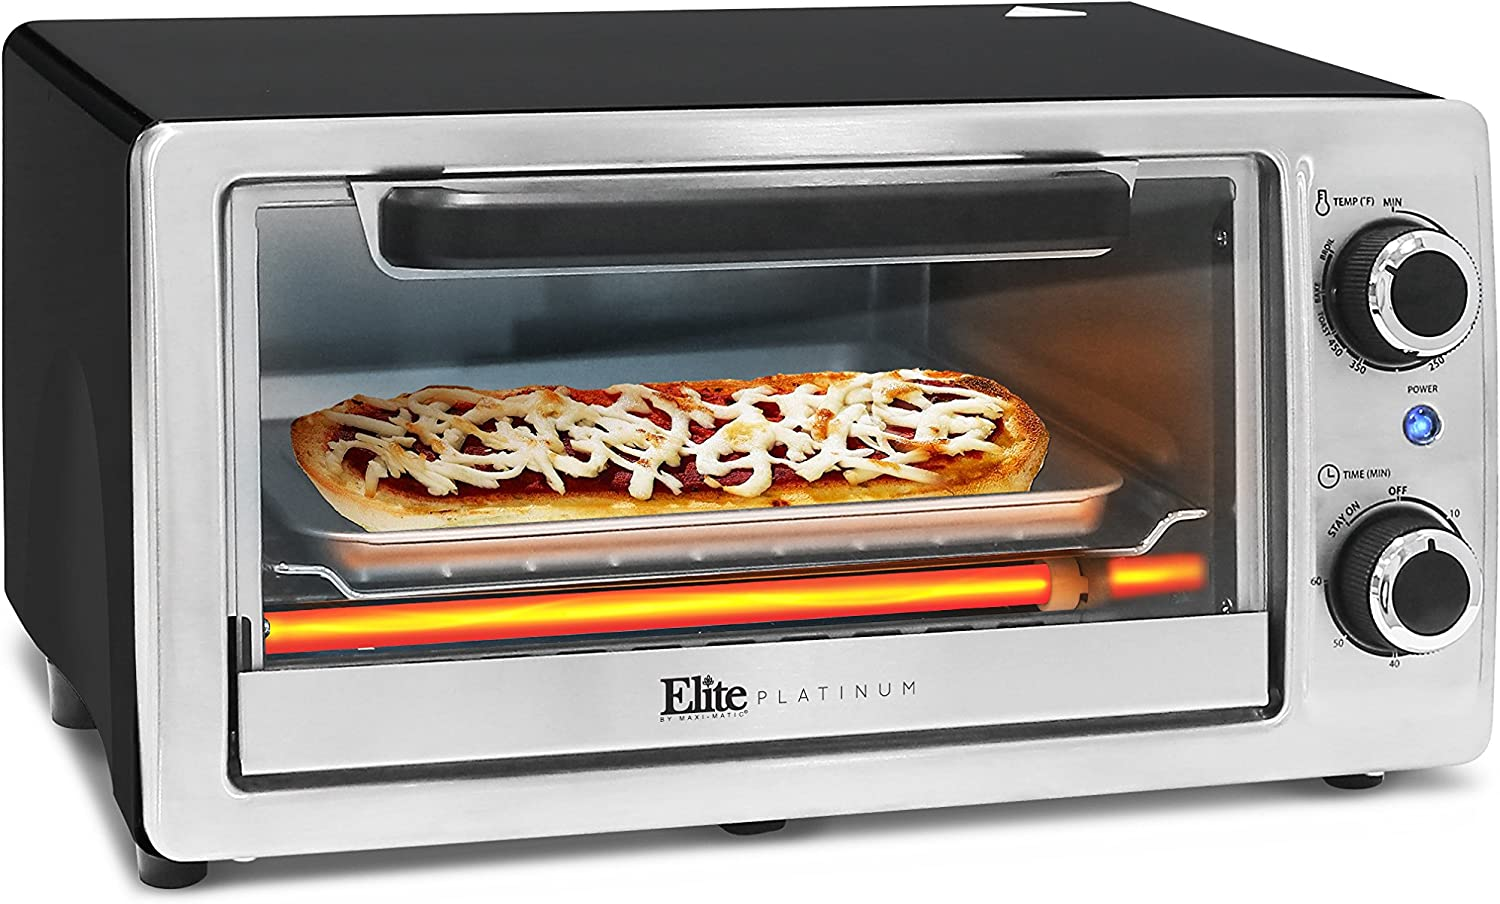 Elite Platinum ETO-9323SS Toaster Oven with Bake Pan, Grill Rack, Crumb Tray, 60-Min Timer, 4-Slice, Stainless Steel